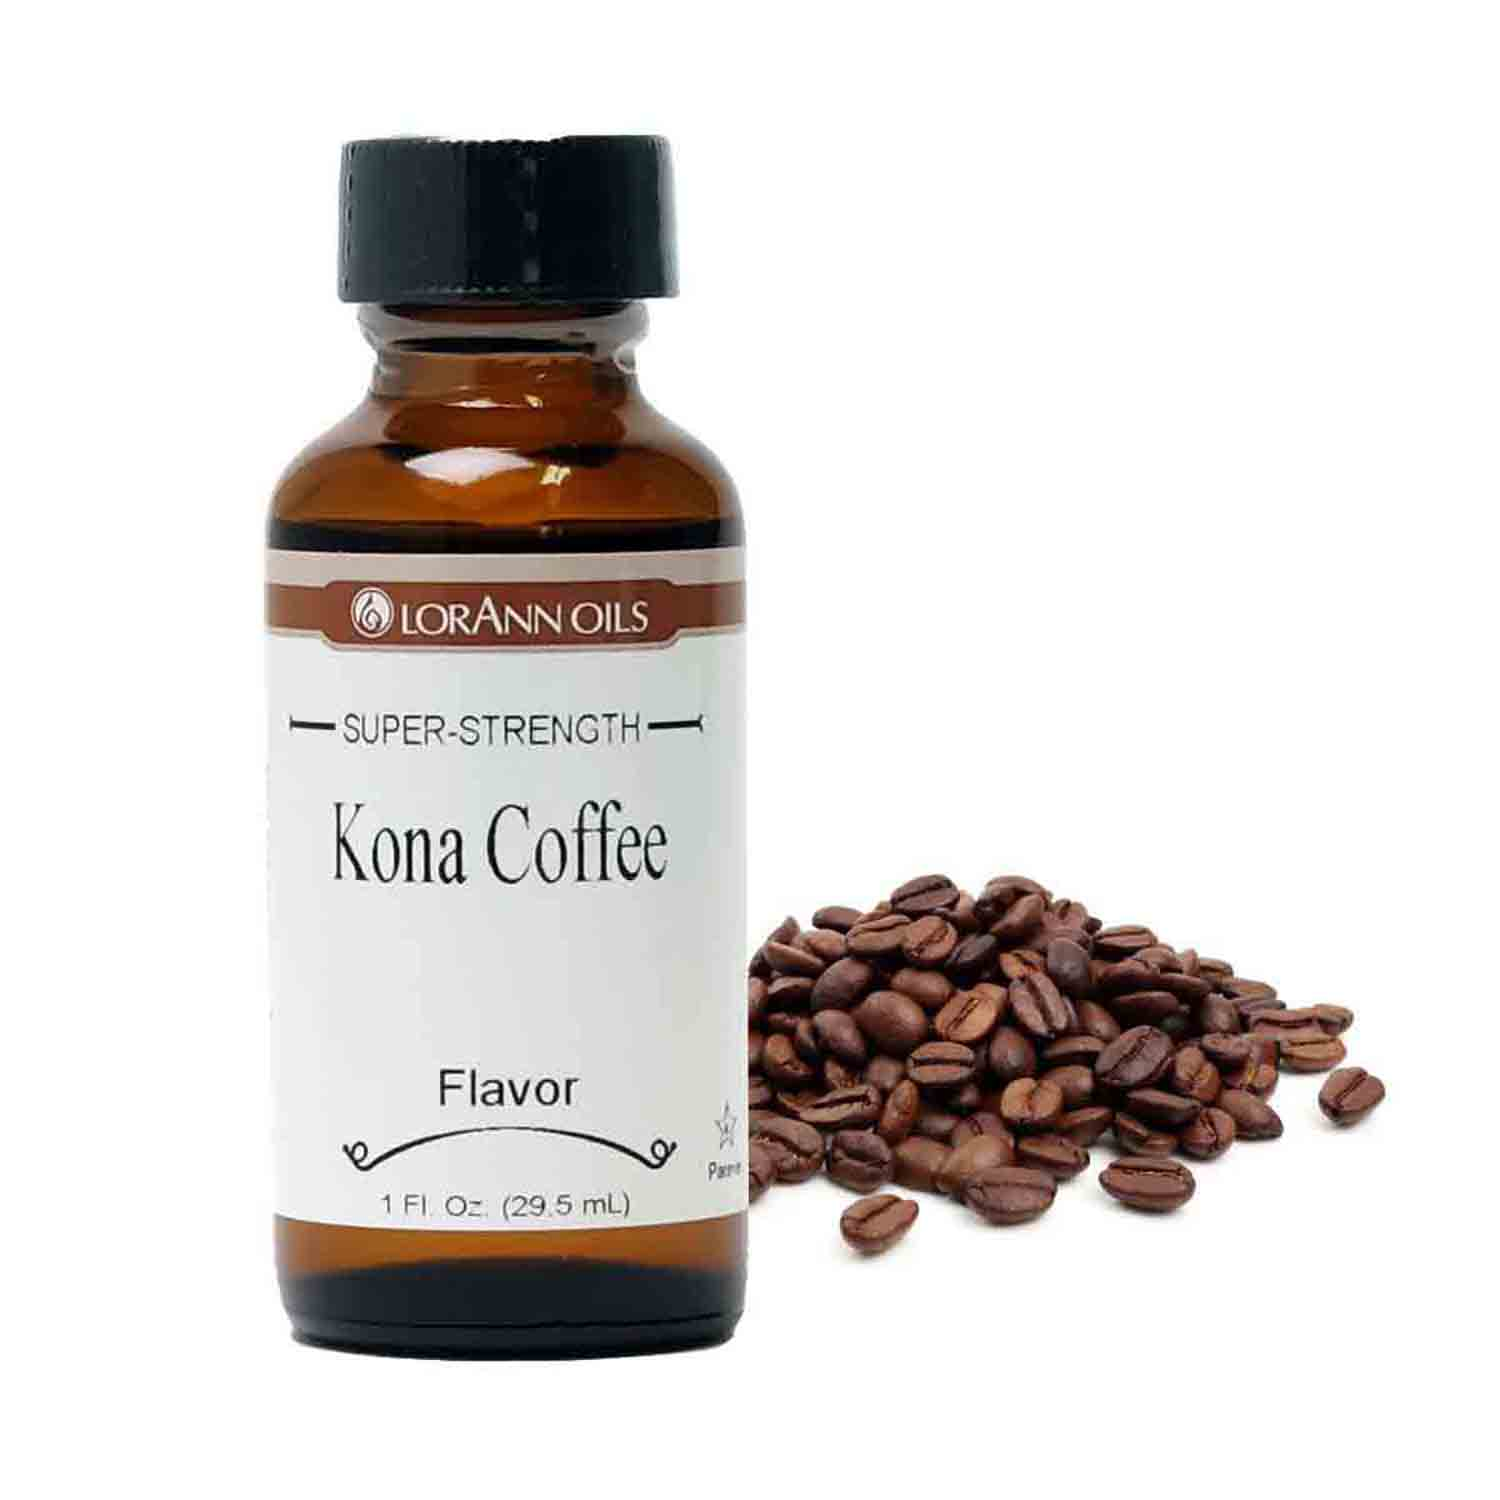 Kona Coffee (Kahlua) LorAnn Super-Strength Flavor